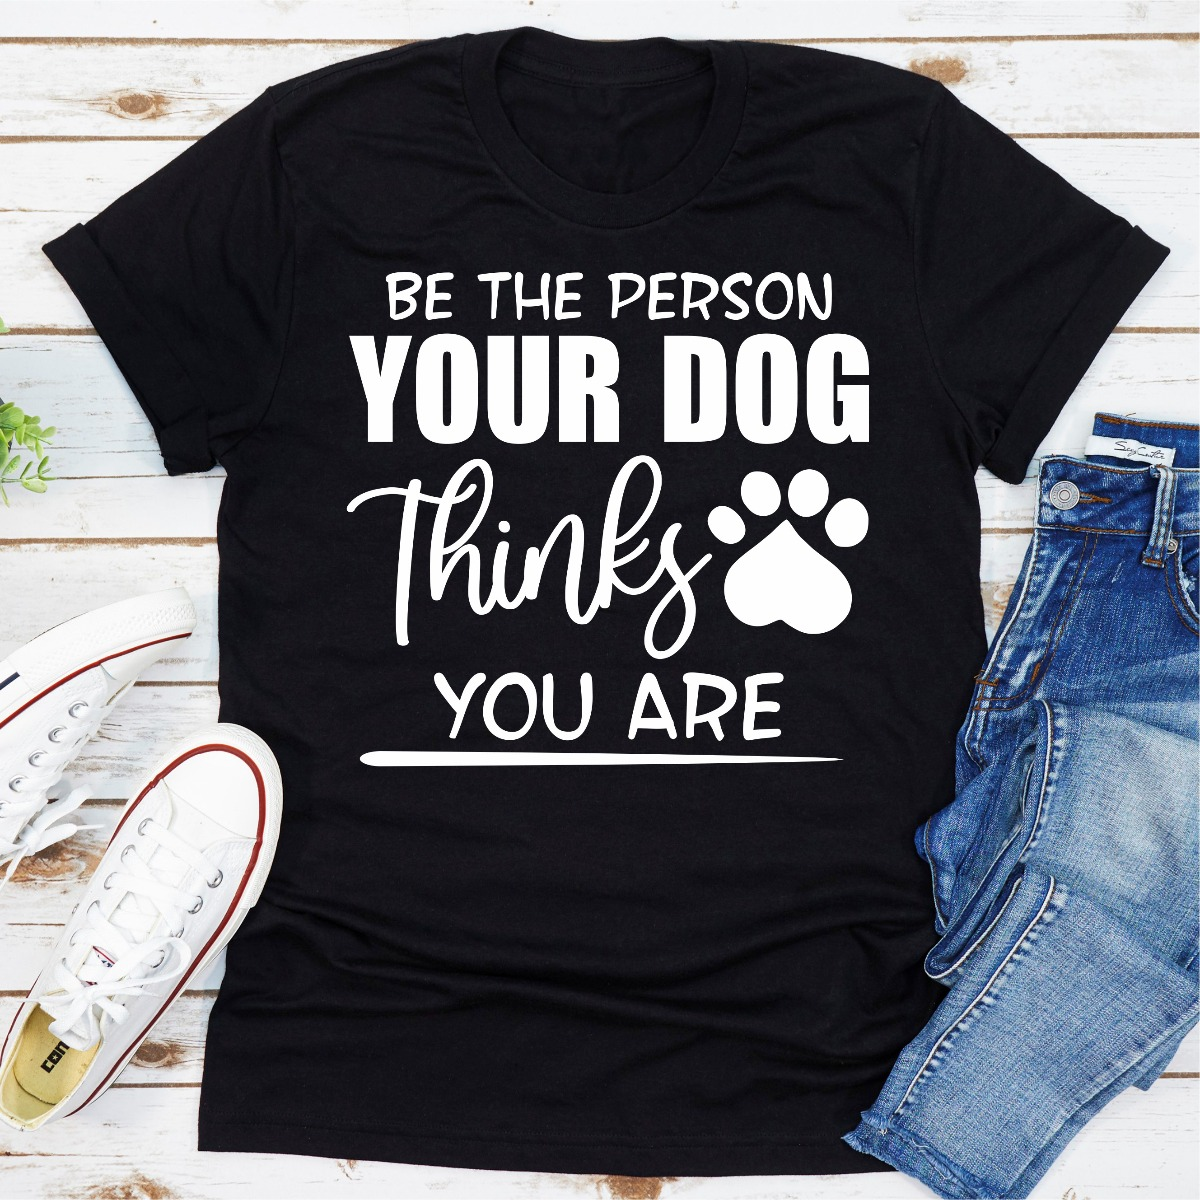 Be The Person Your Dog Thinks You Are (Black / Xl)